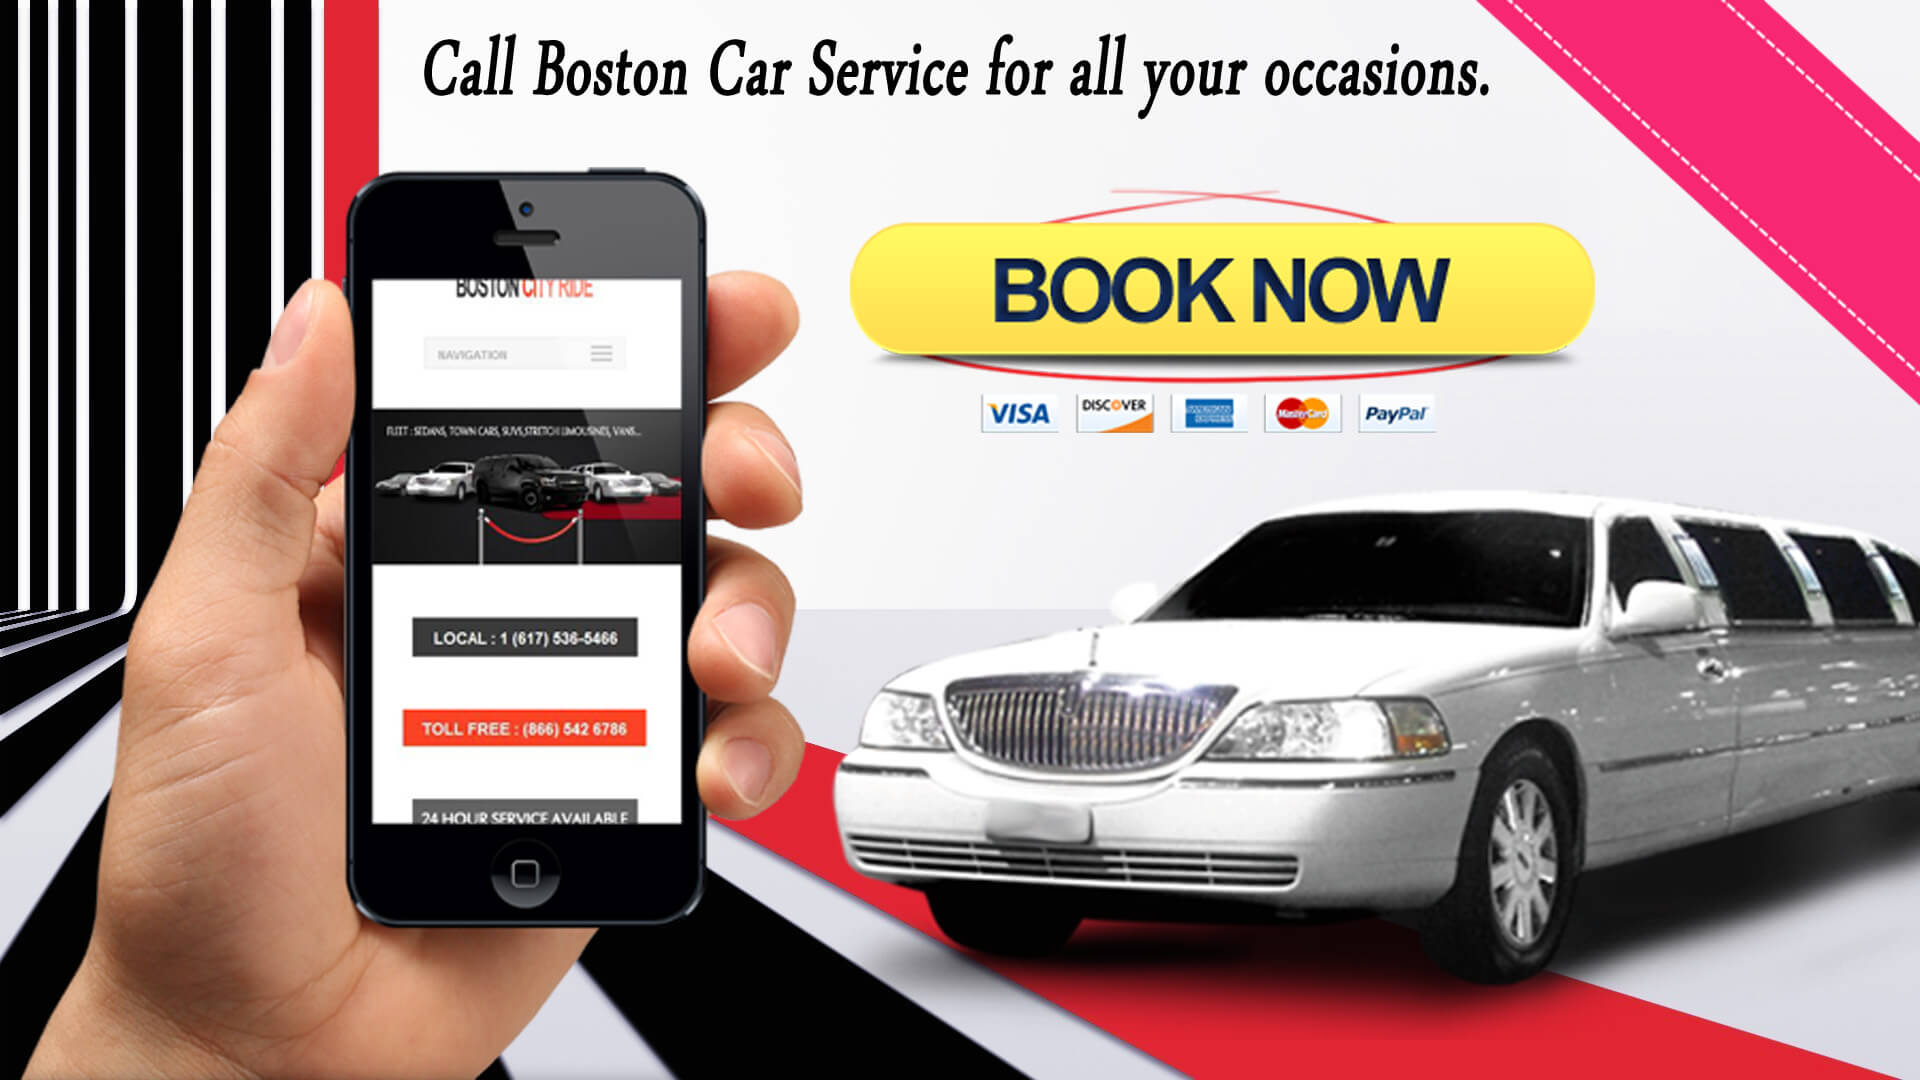 Call-Boston-Car-Service-for-all-you-occasions Call Boston Car Service for all your occasions.